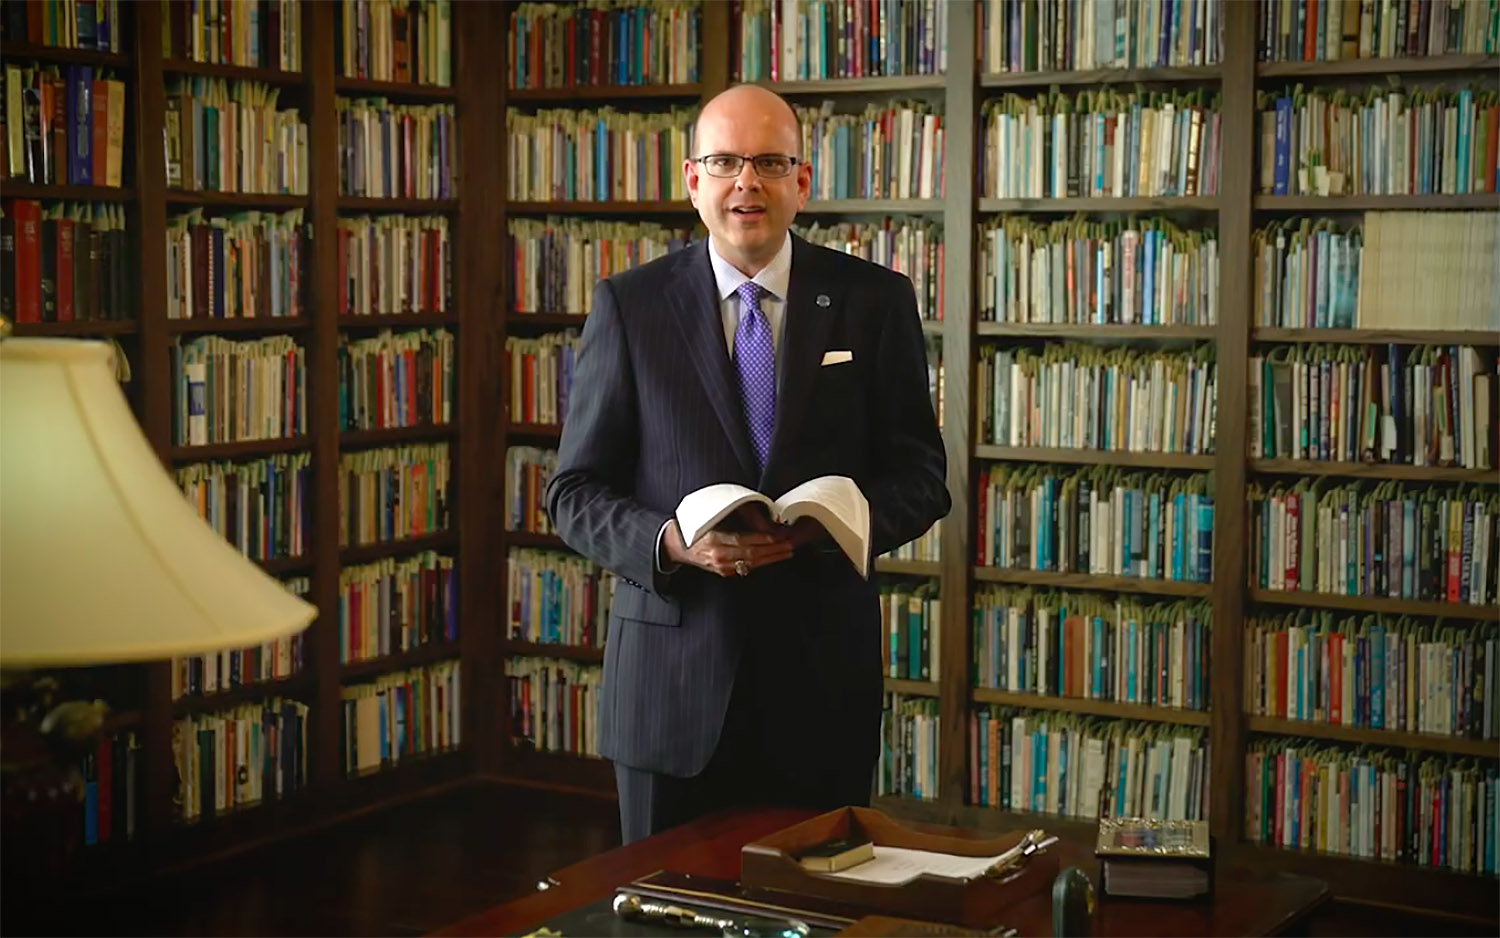 Greenway encourages students to trust in God in times of uncertainty